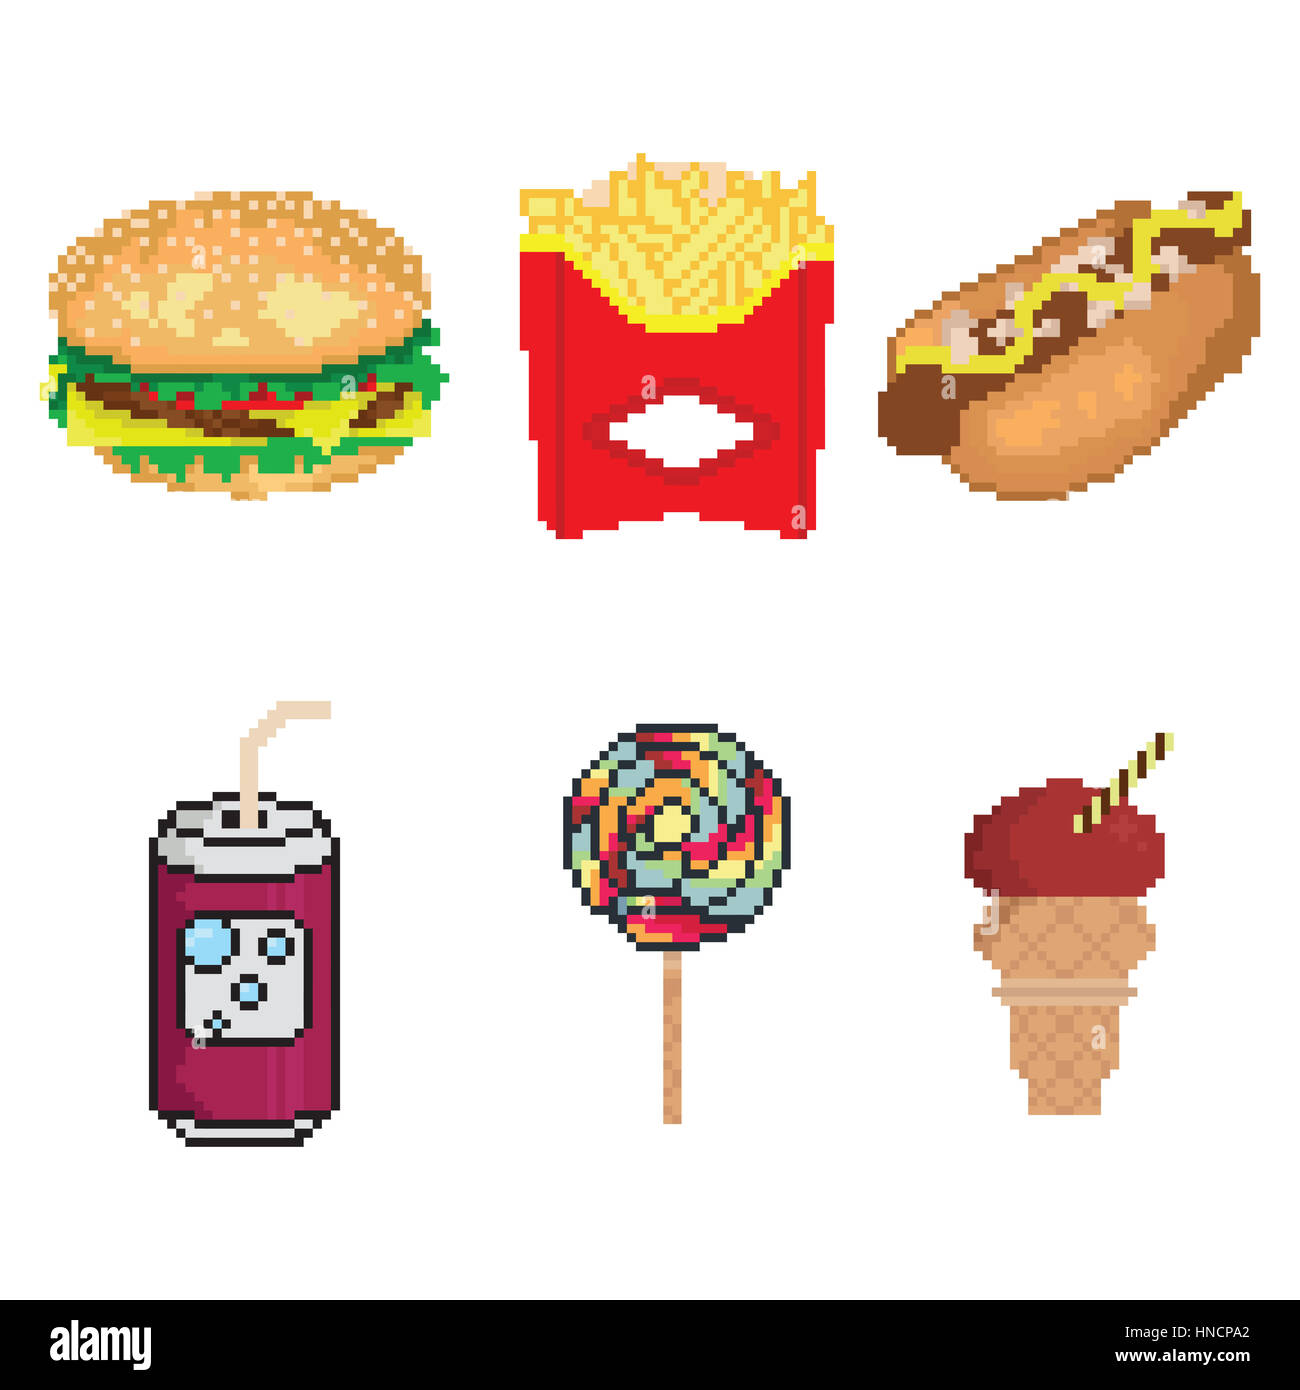 Pixel junk food icon set - Stock Image